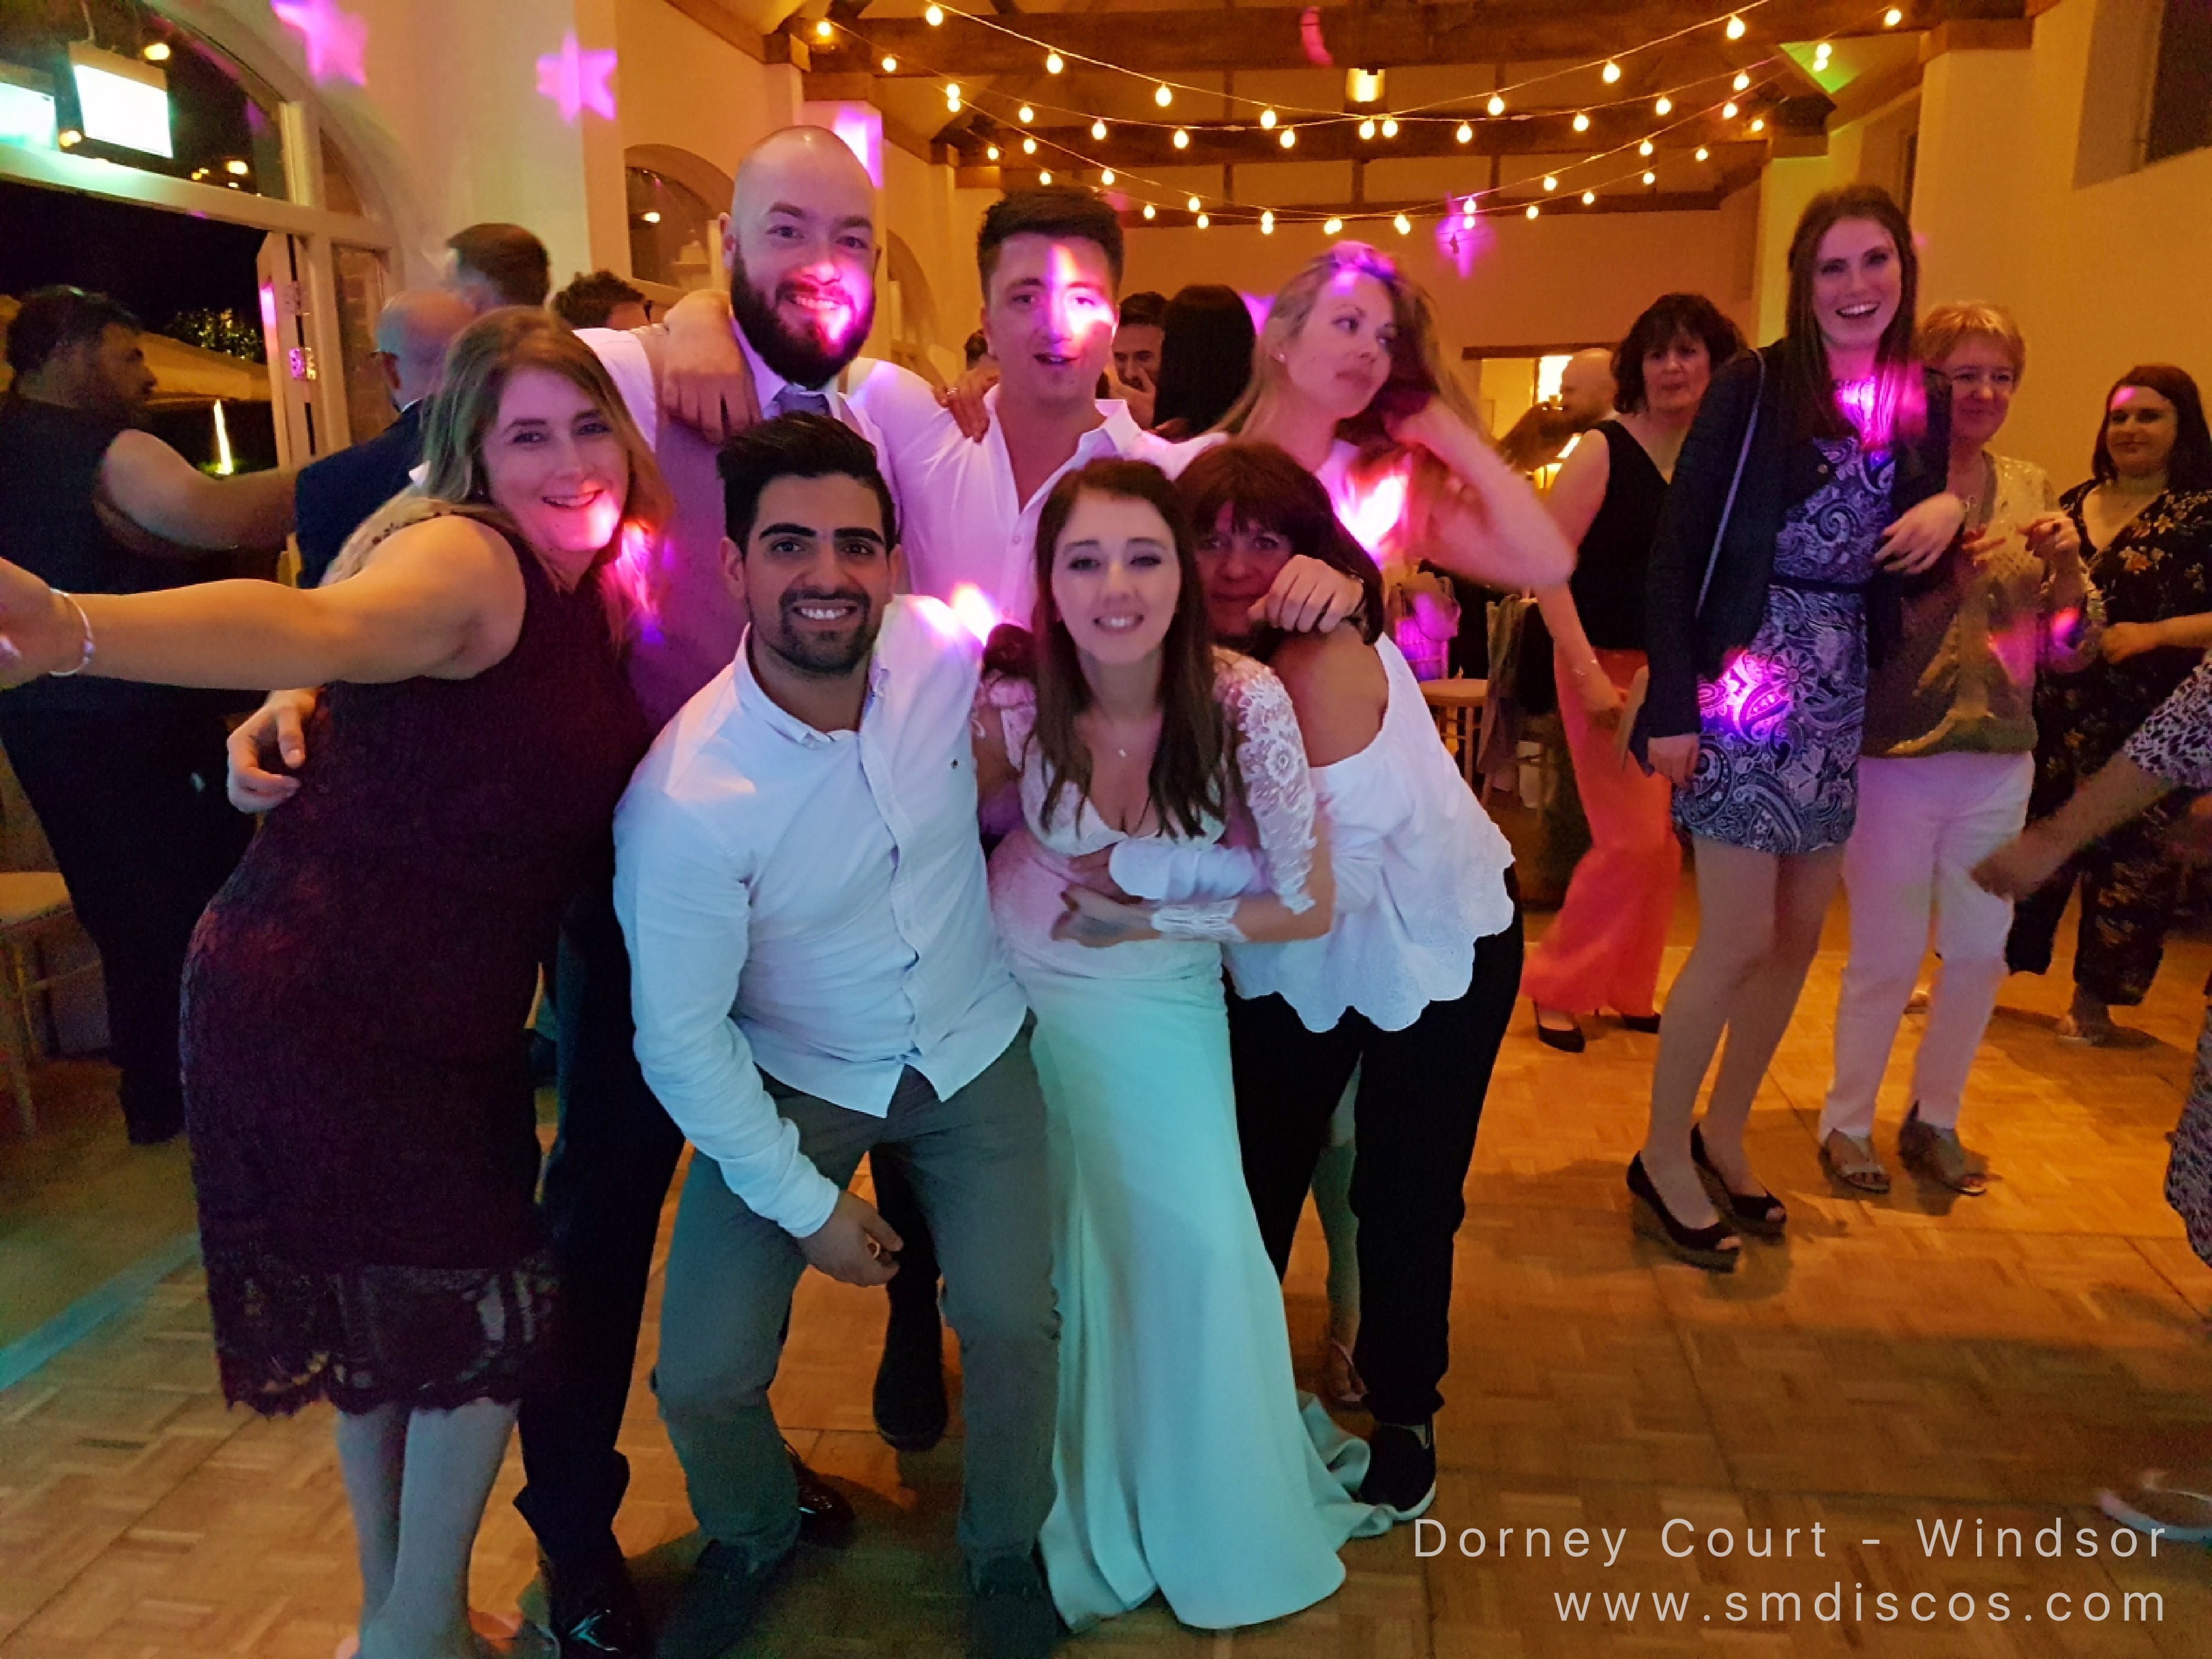 Dorney Court Weddings